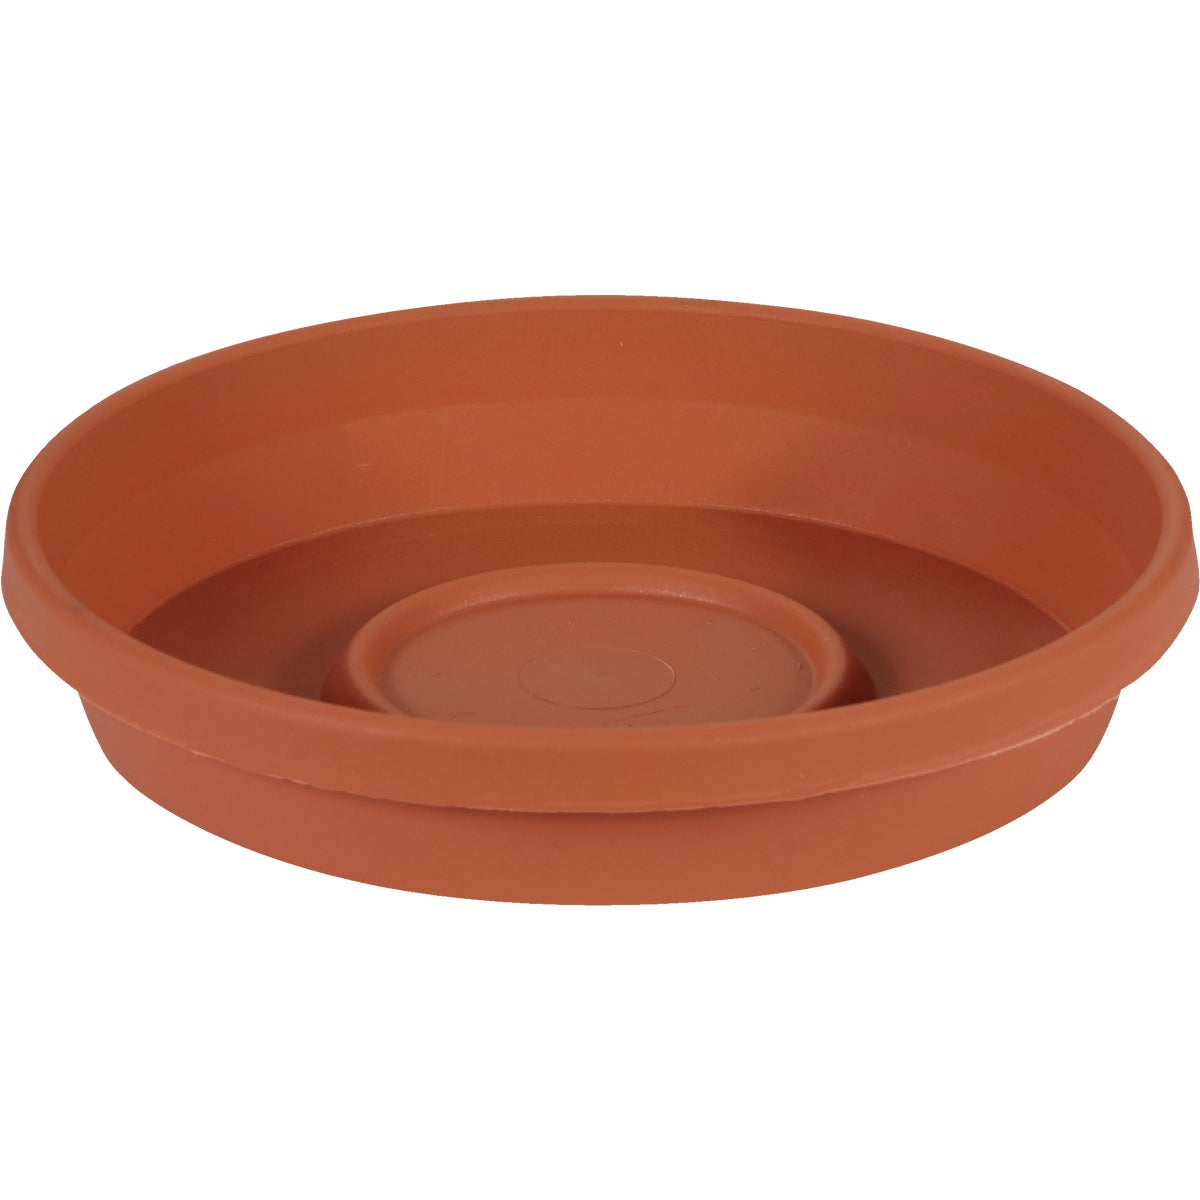 "8"" CLAY POLY SAUCER - 20-51008C by Fiskars Brands Inc"